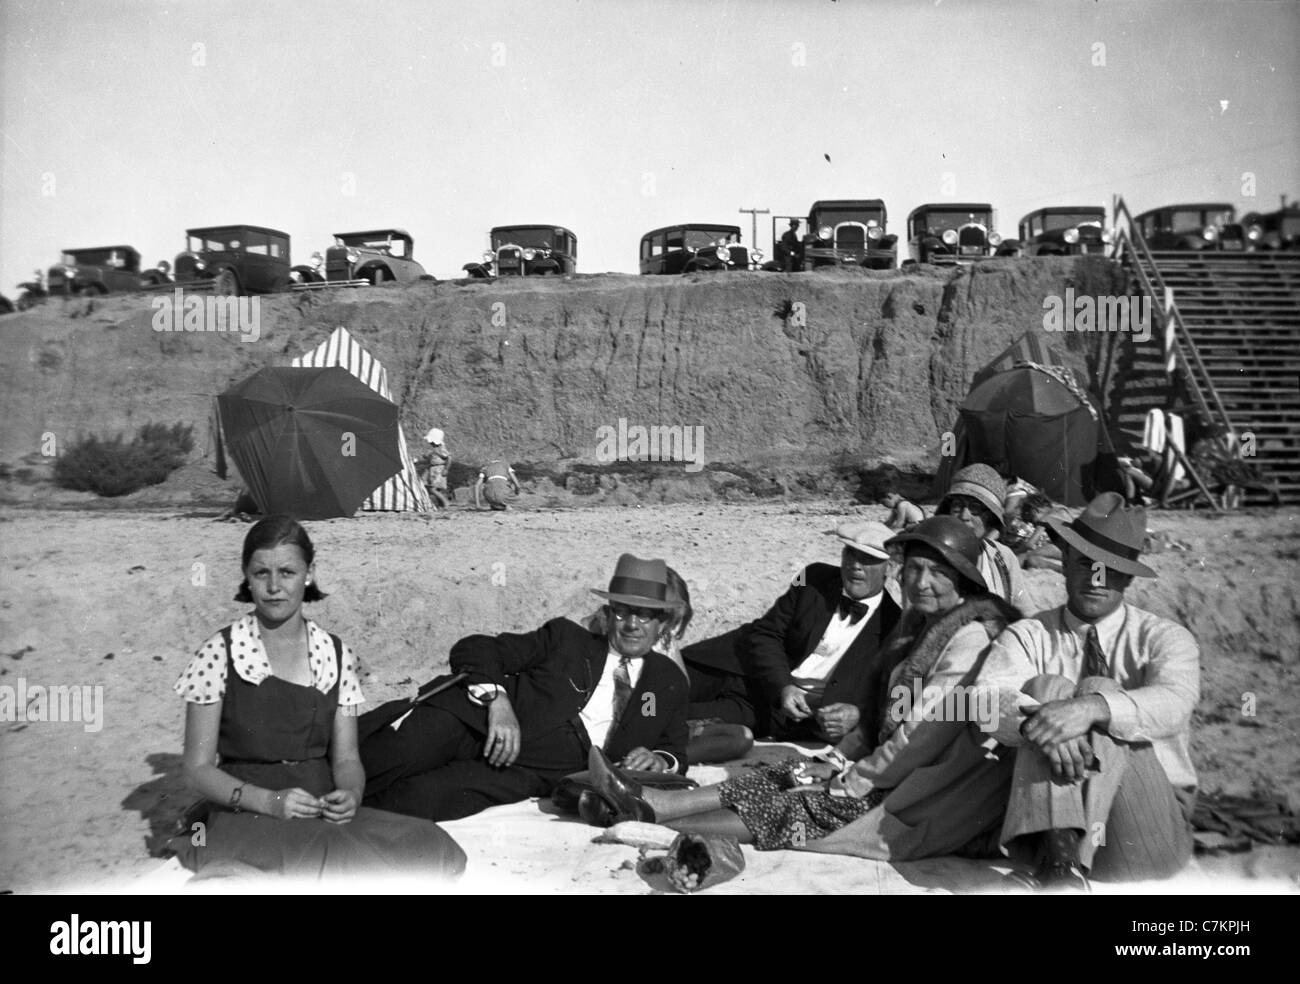 family and friends hanging out at southern california beach 1930s fashion group photo cars black and white Stock Photo